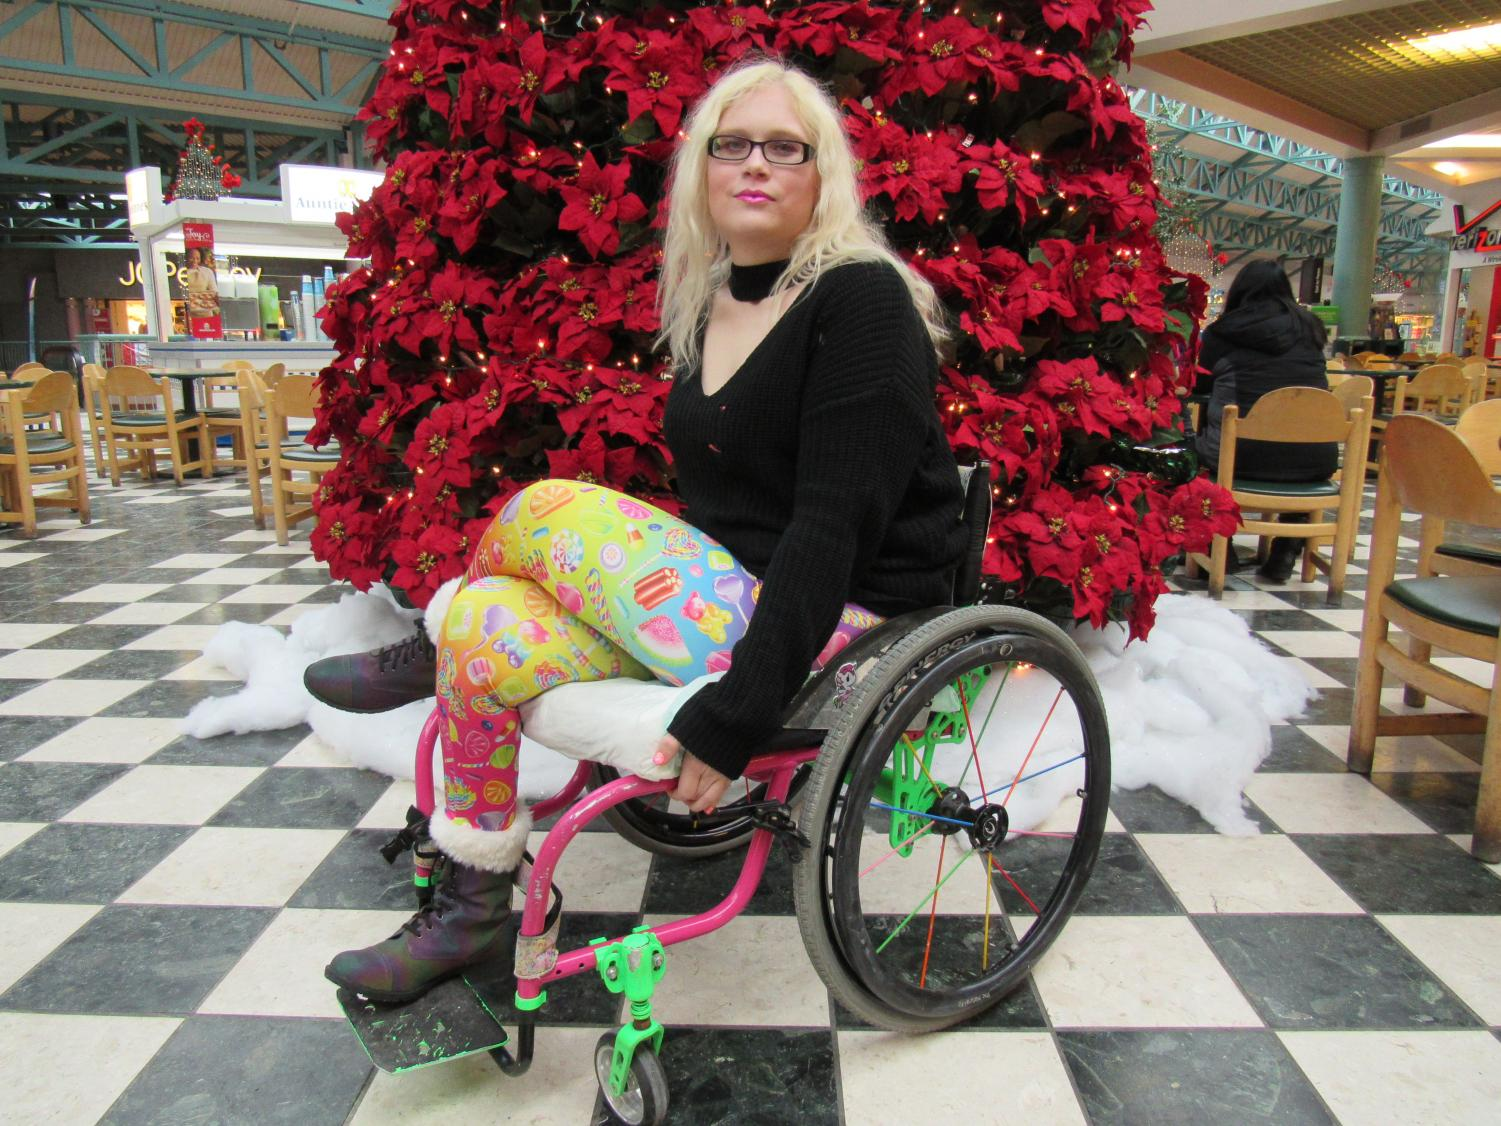 Barb Zablotney, of Windber, plans to compete in Ms. Wheelchair Pennsylvania, a beauty pageant for disabled women.  Here, she poses at the Galleria mall food court.